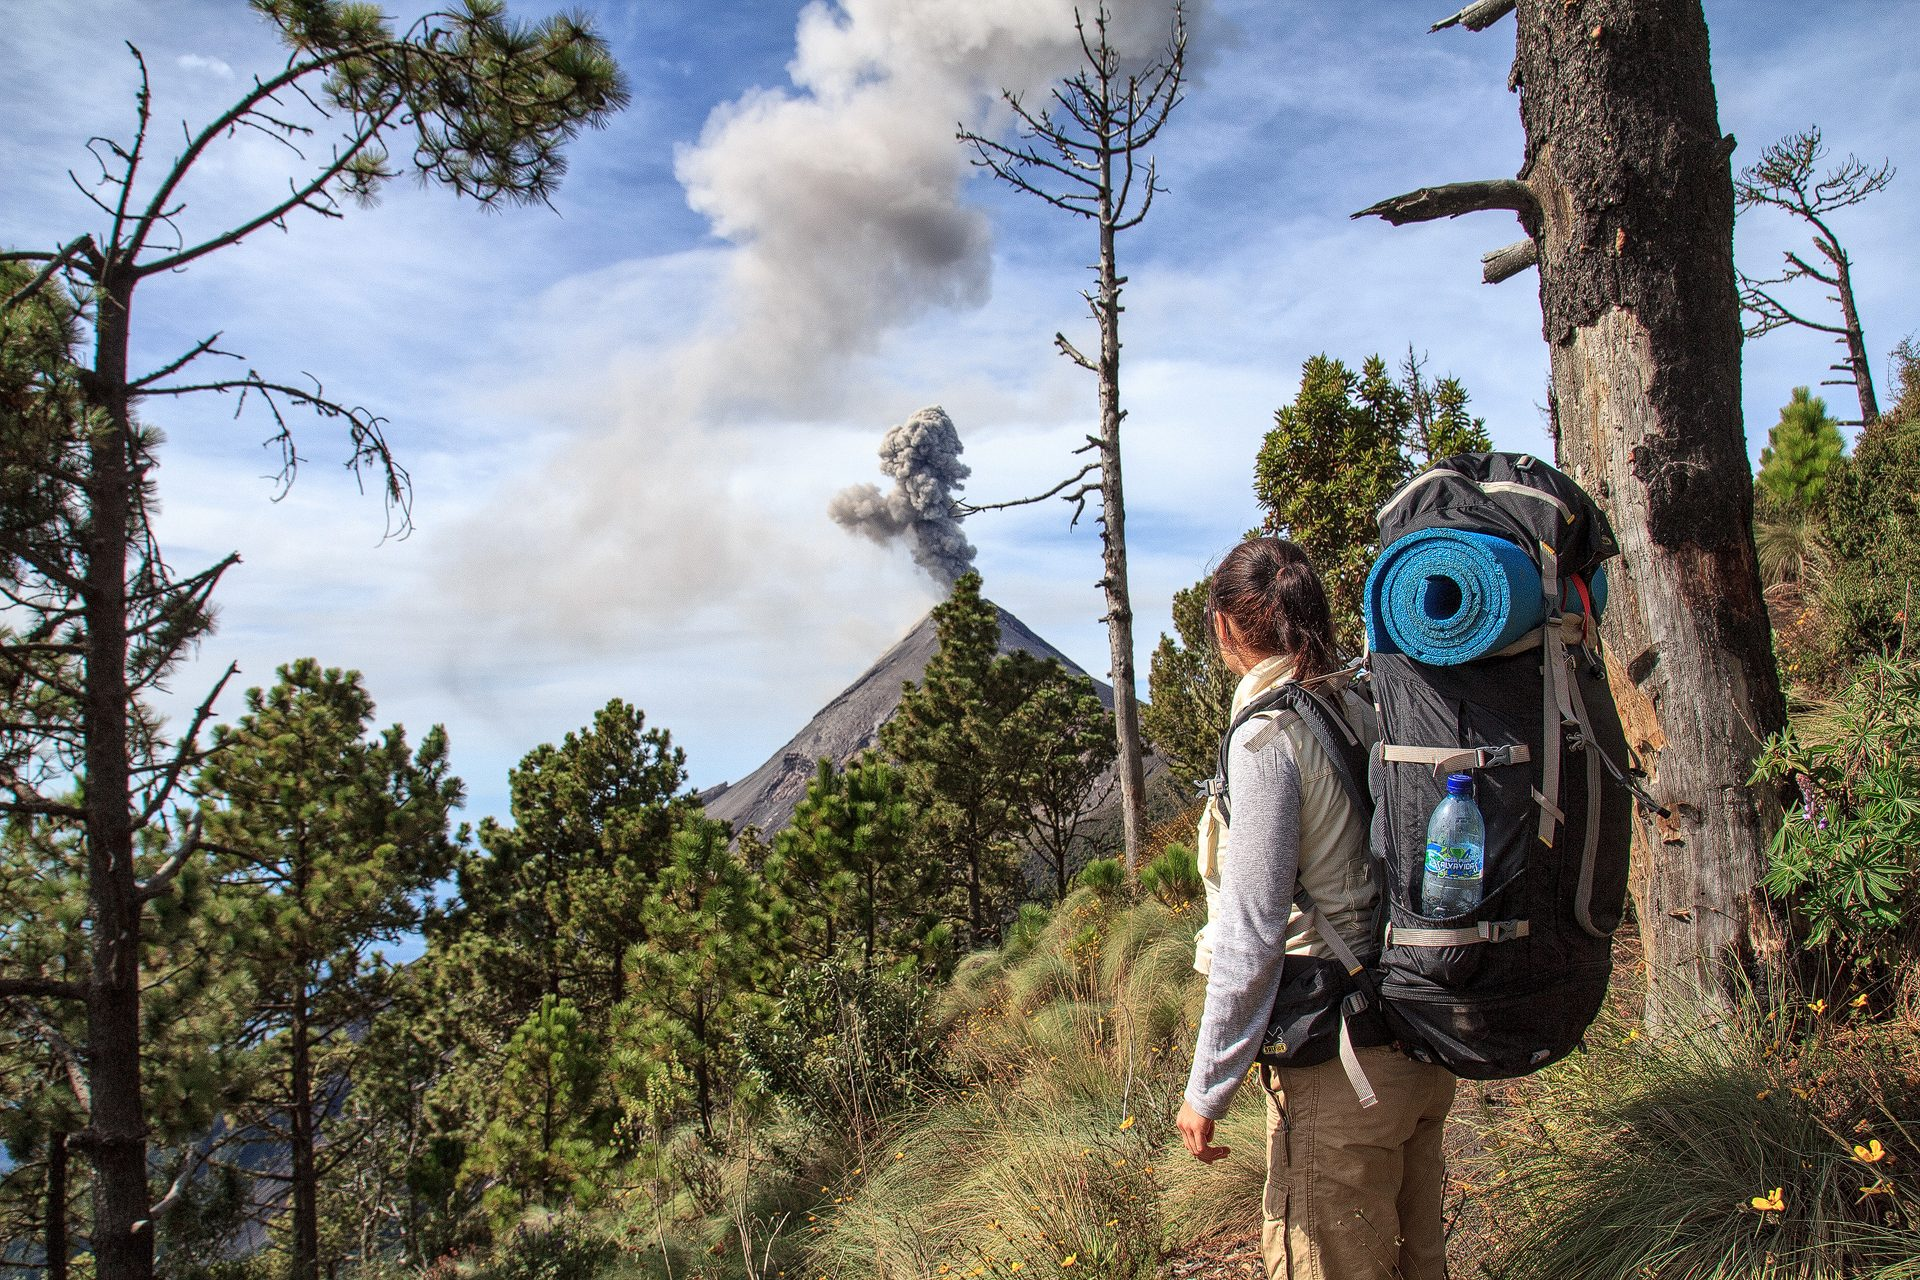 adventure, vulcan, volcano, vulkan, fuego, guatemala, hiking, wandern, trekking, girl, backpack, erruption, ash, explosion, eruption